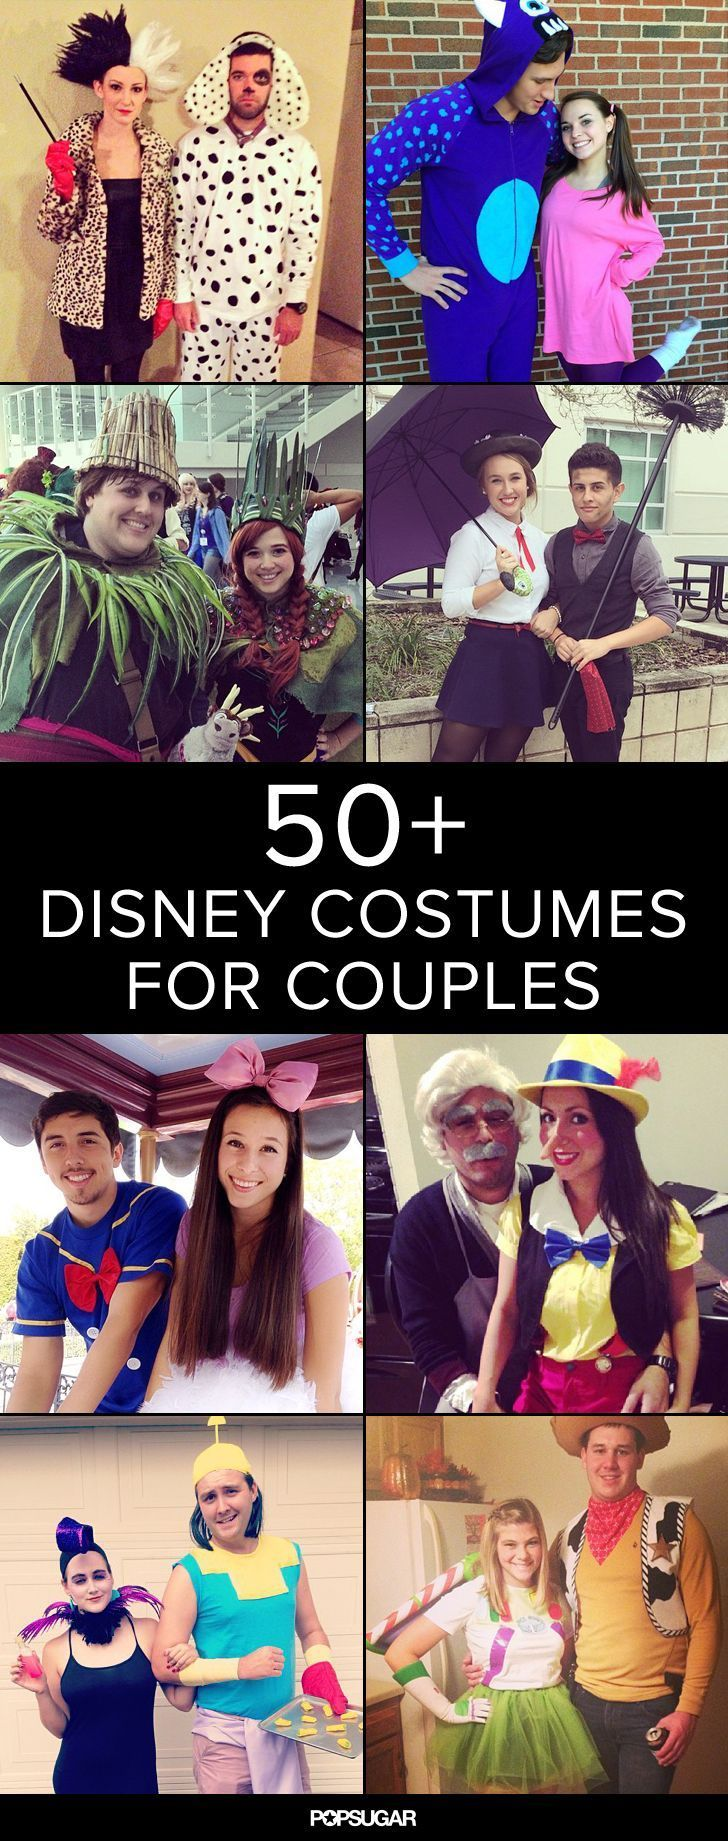 29 best Halloween costumes images on Pinterest